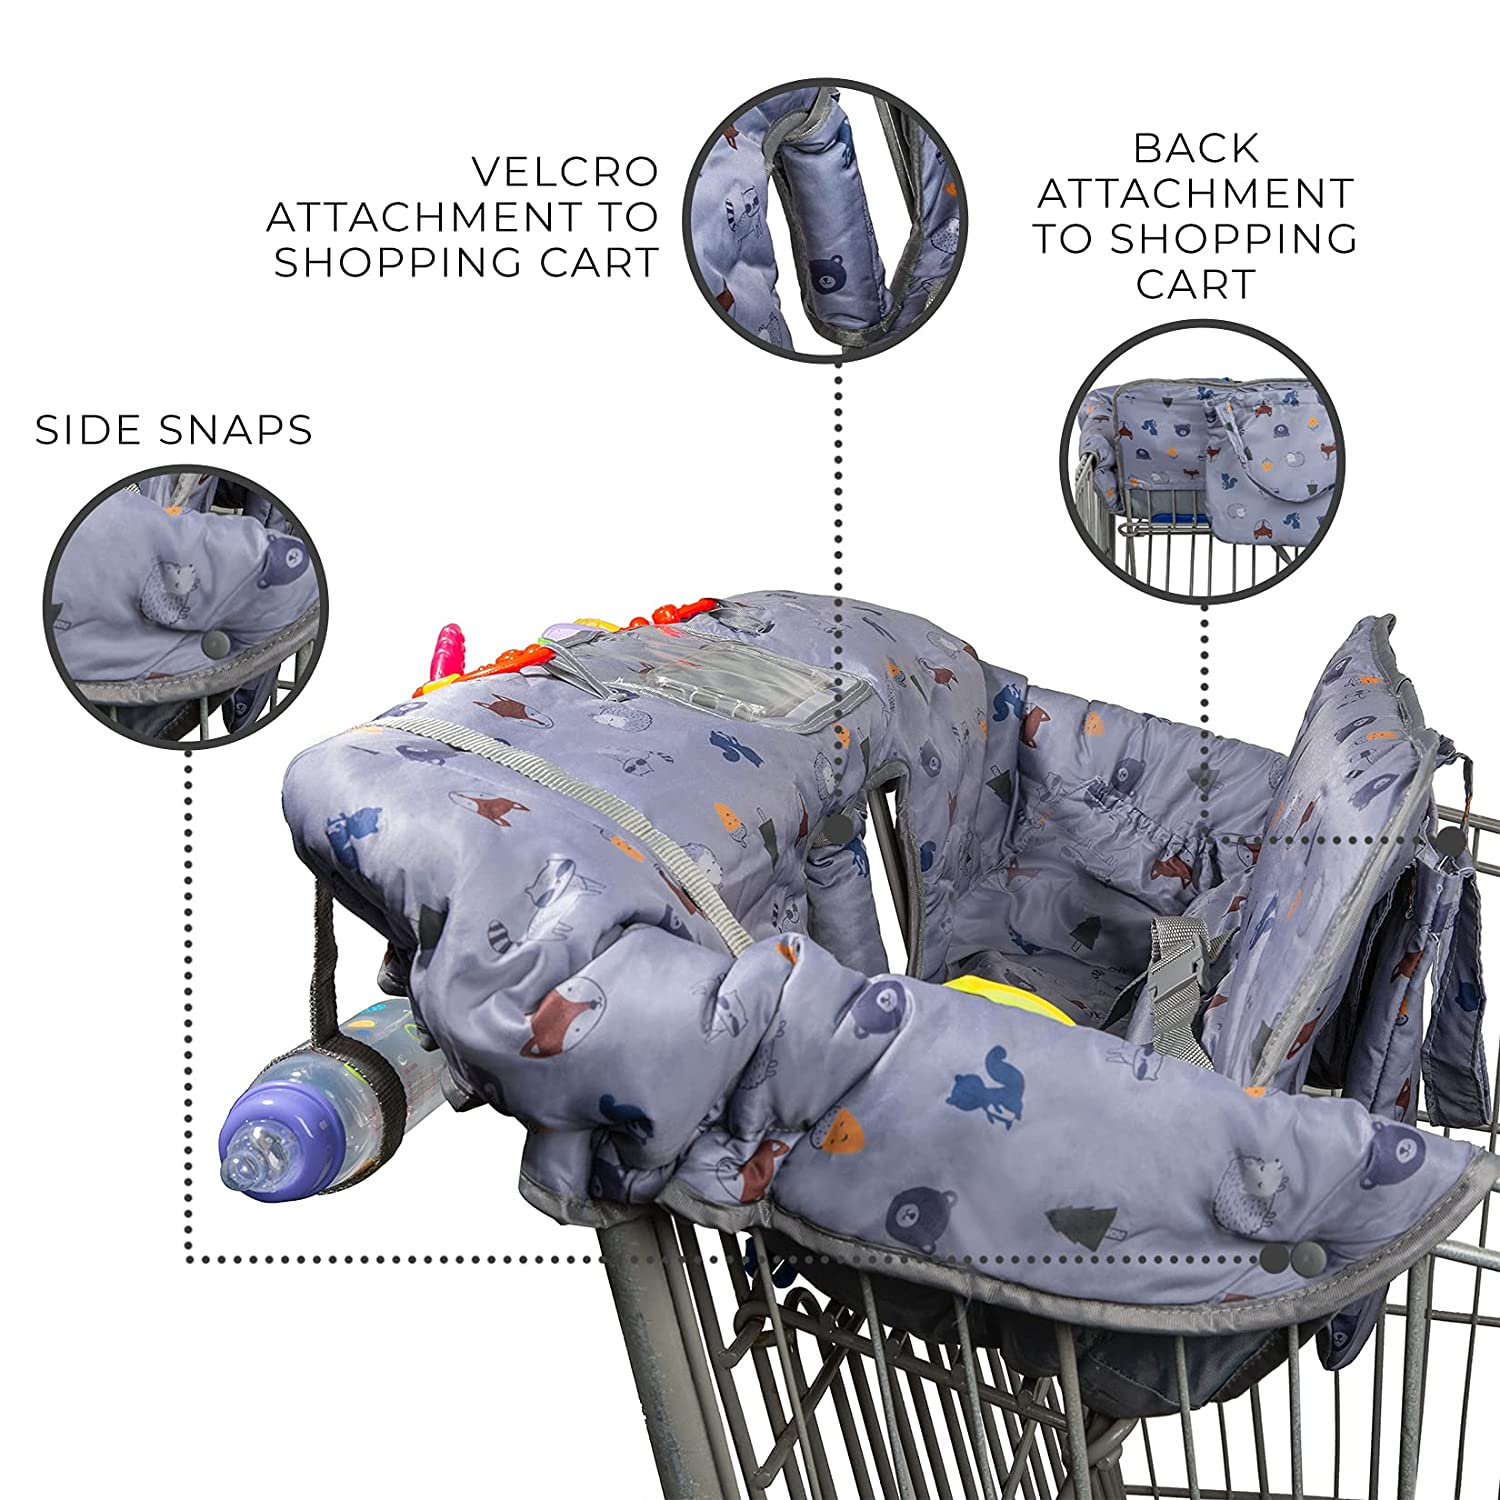 Joyrange Shopping Cart Cover for Baby or Toddler | 2-in-1 High Chair Cover | Universal Fit for Boy or Girl | Folds into Carry Bag | Machine Washable